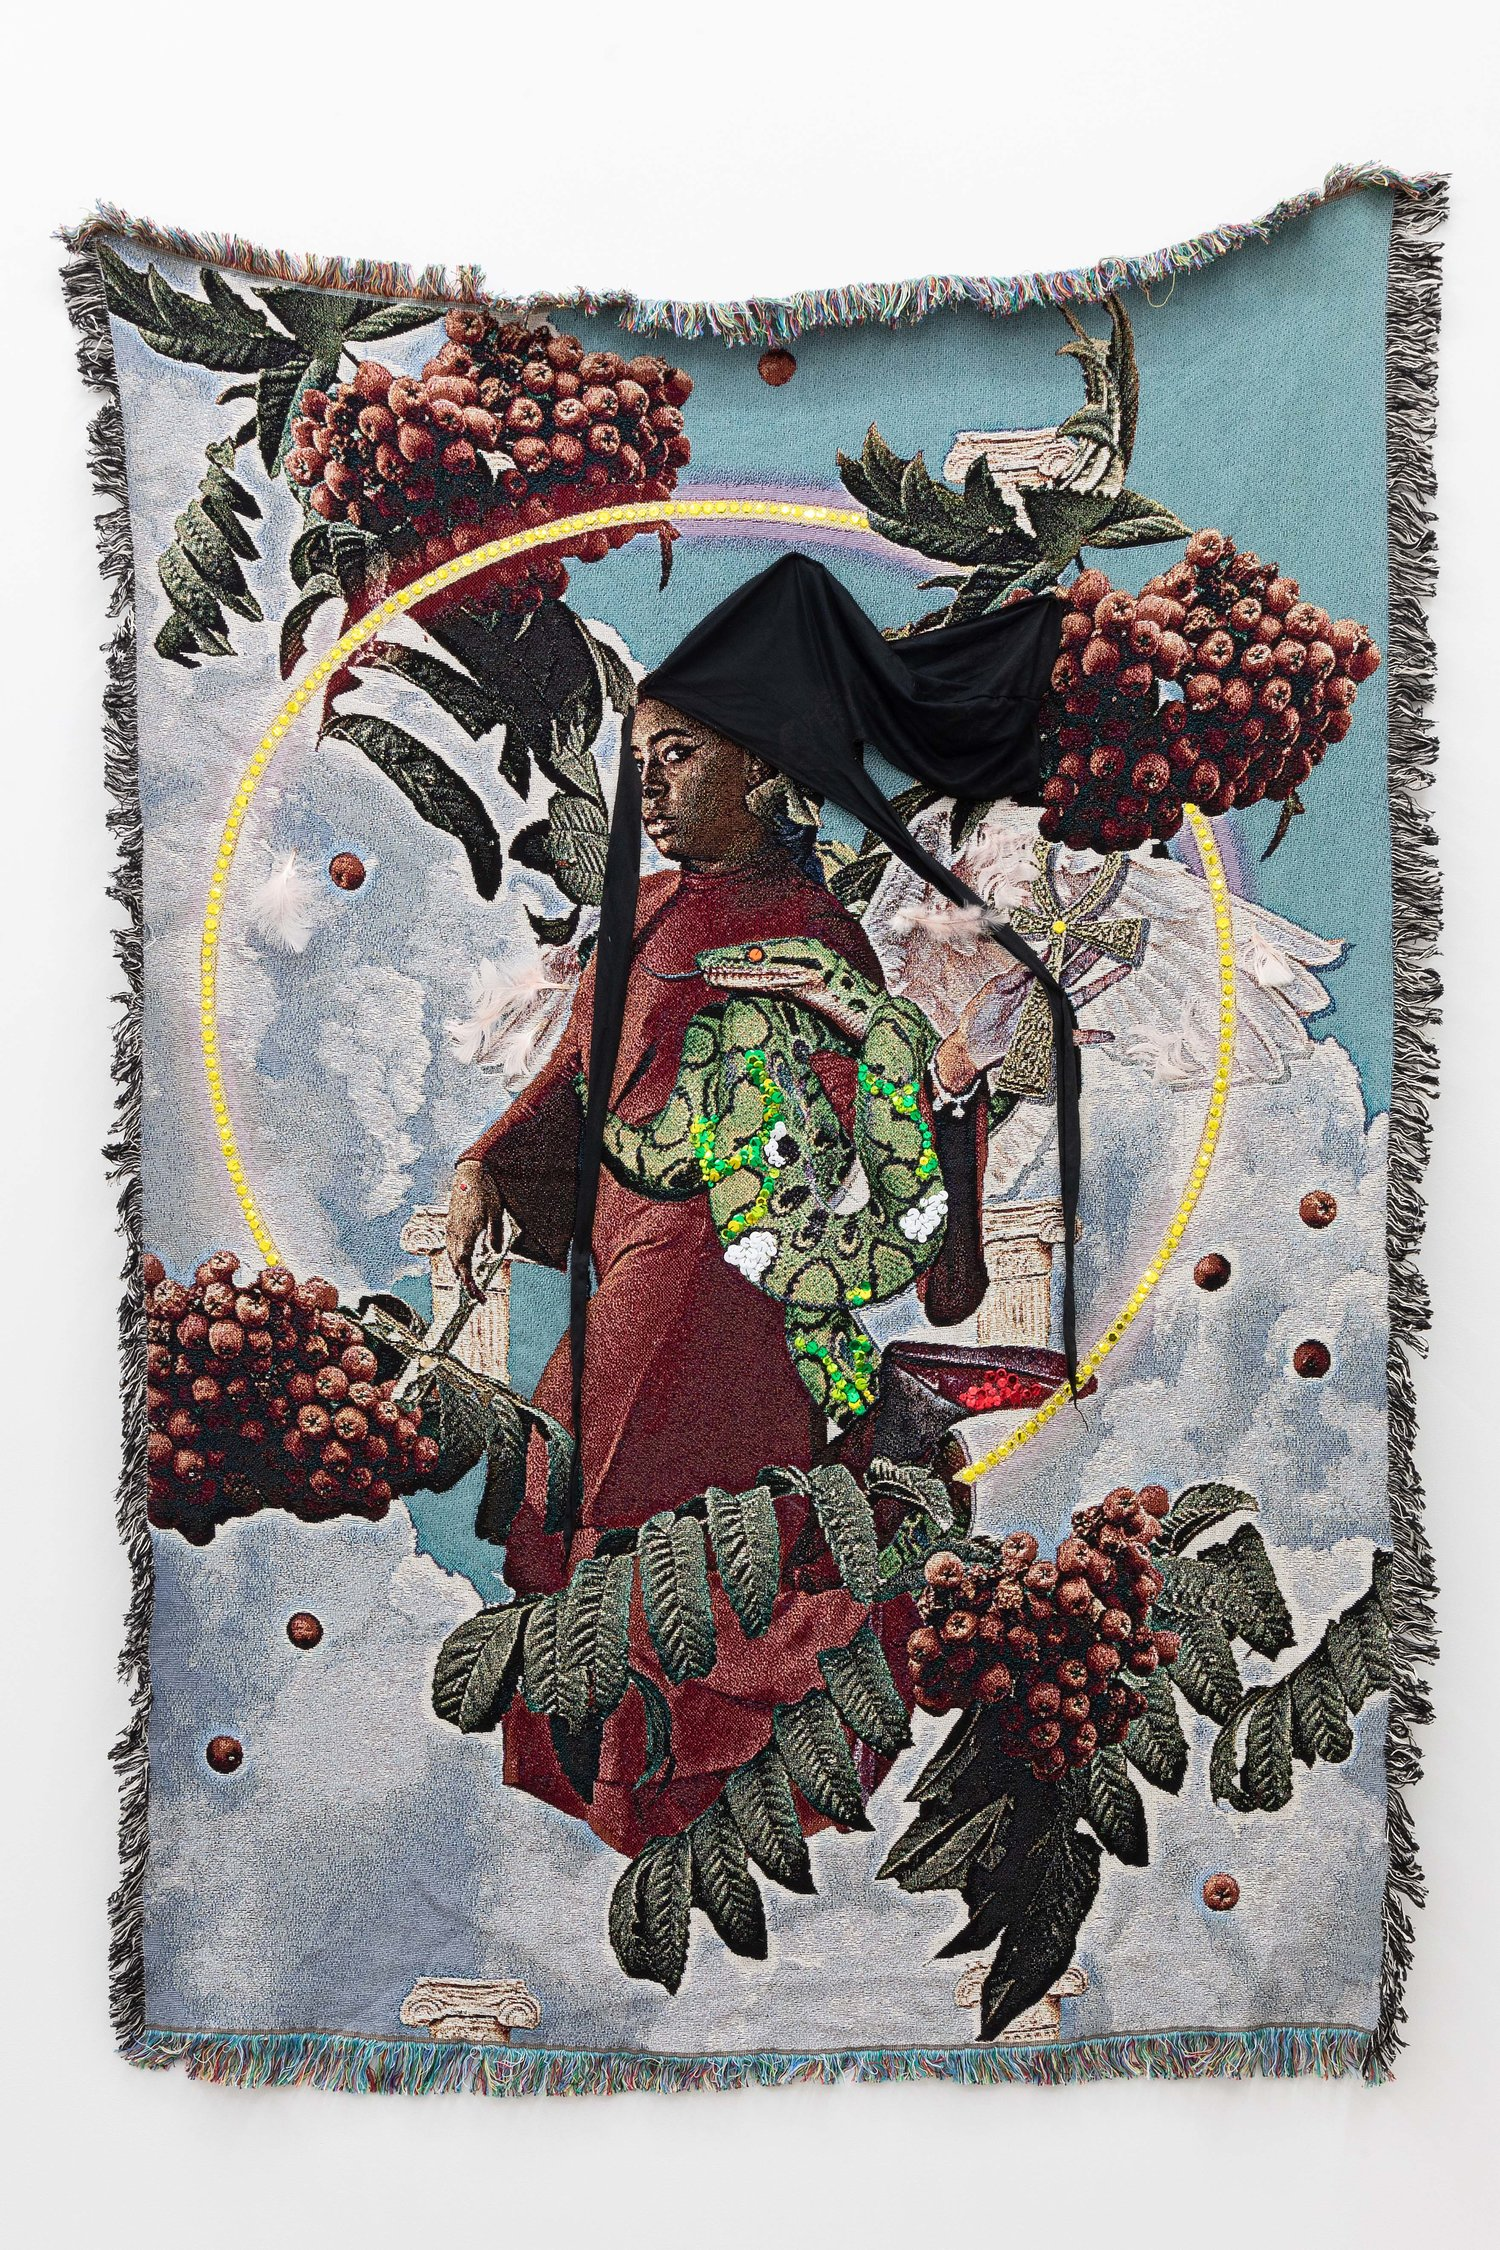 Qualeasha Wood, Test of Faith , 2019 Jacquard, sequins, durag, feathers 74 x 51 in (188 x 129.5 cm)